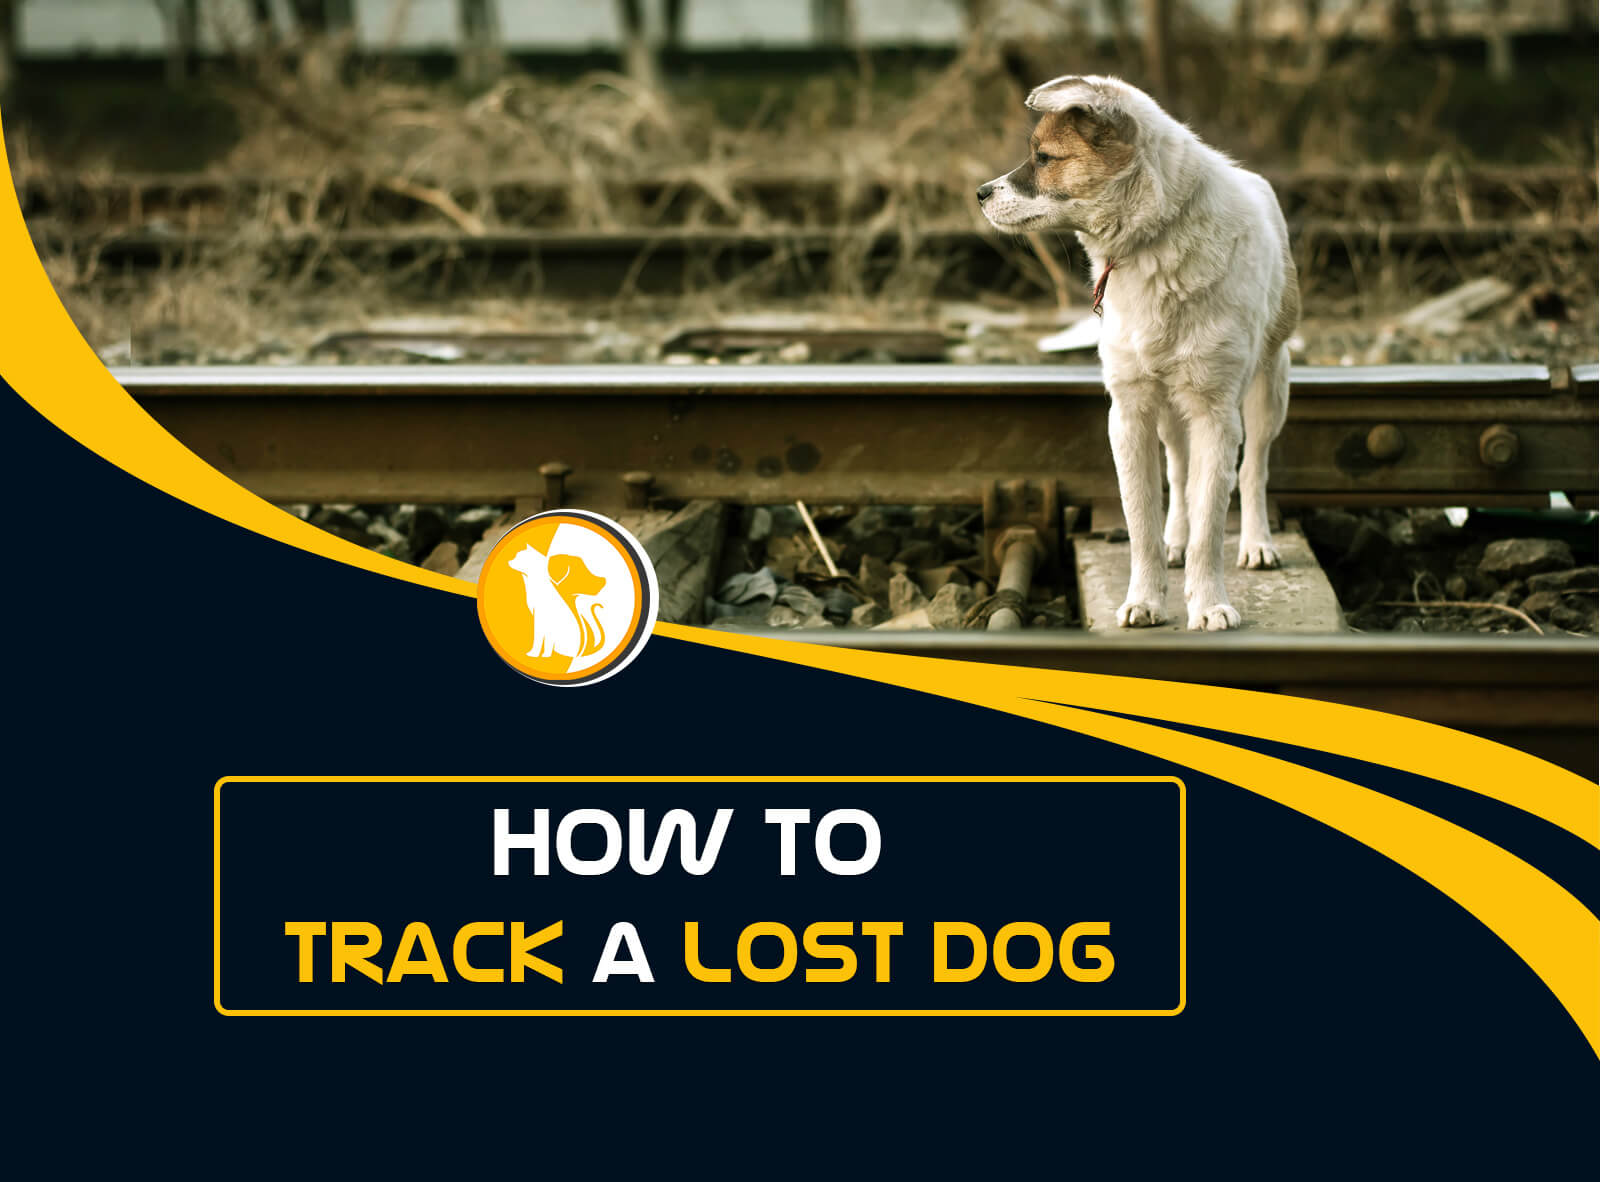 How to Track a Lost Dog